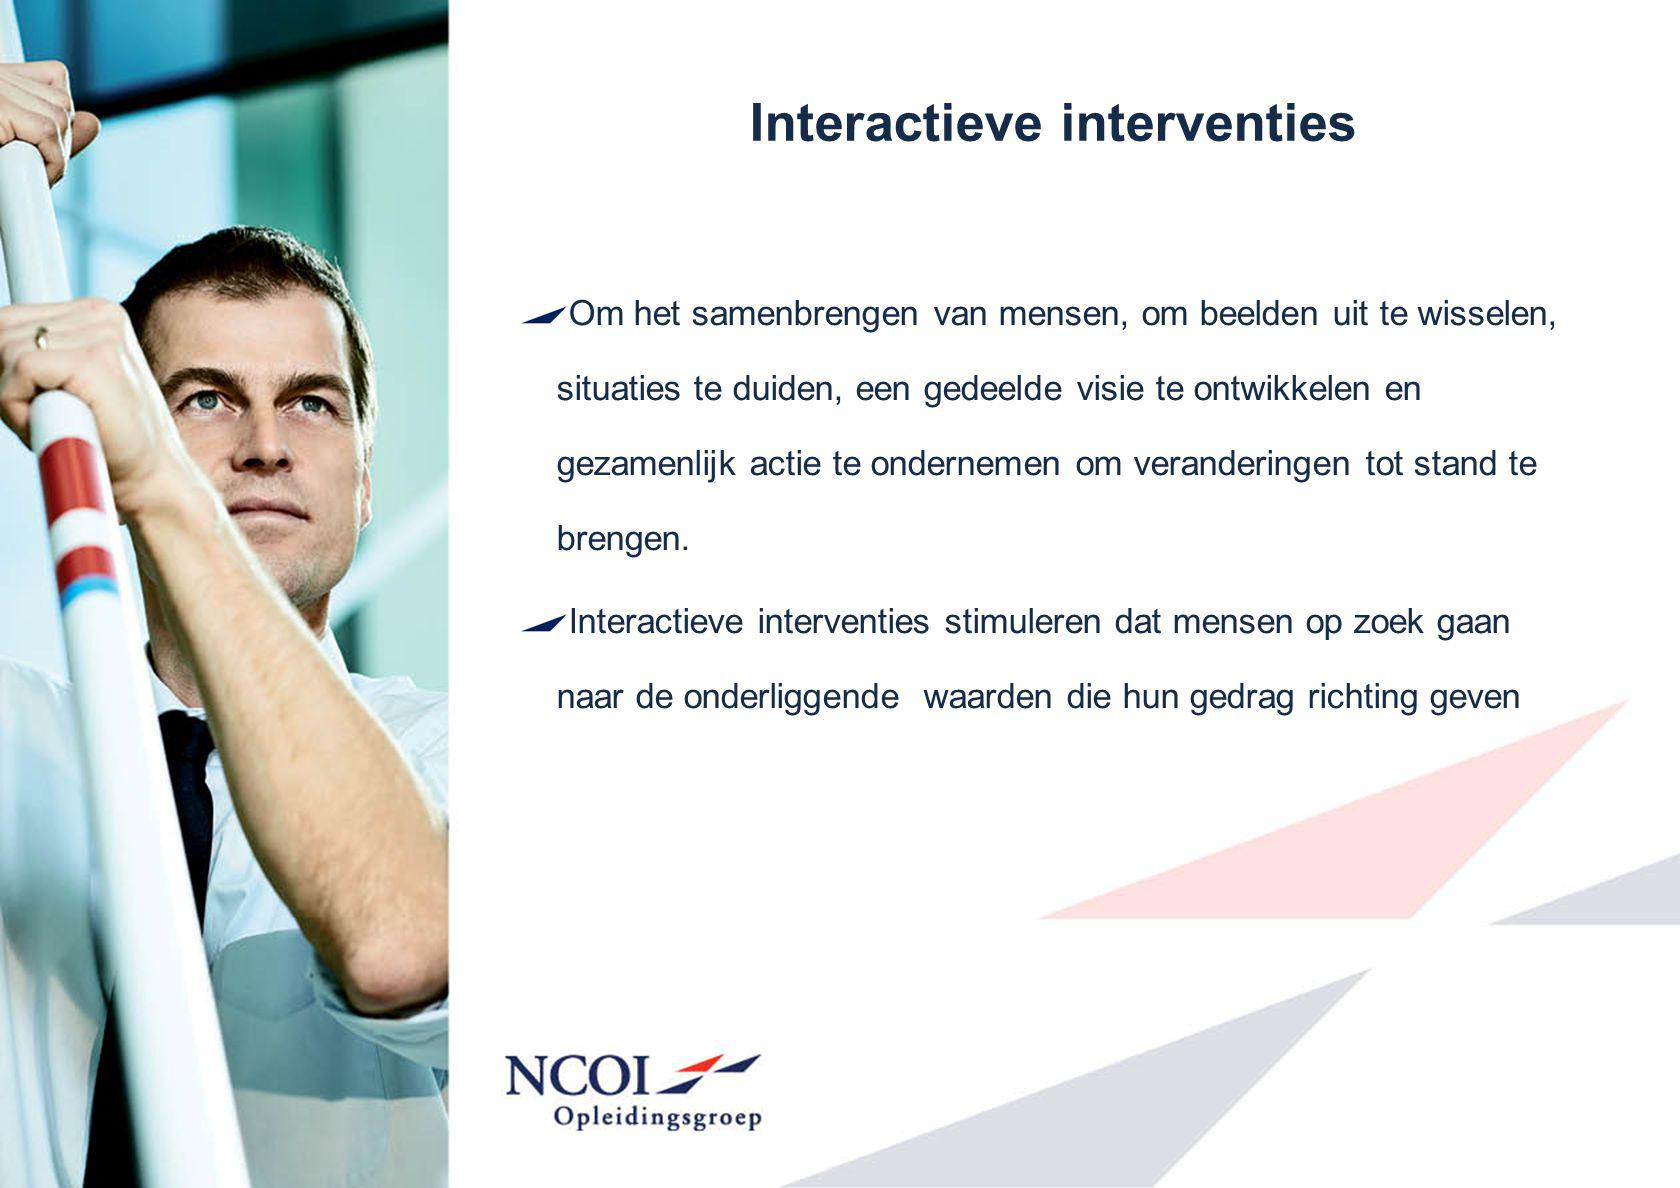 Interactieve interventies